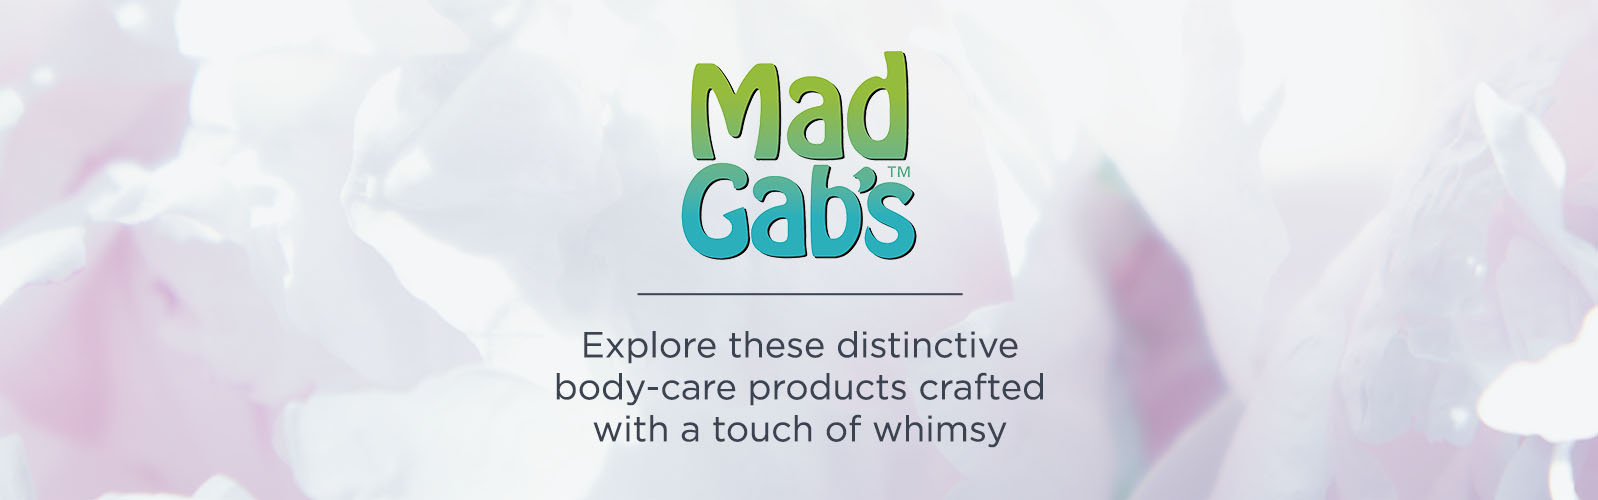 Mad Gab's,  Explore these distinctive body-care products crafted with a touch of whimsy